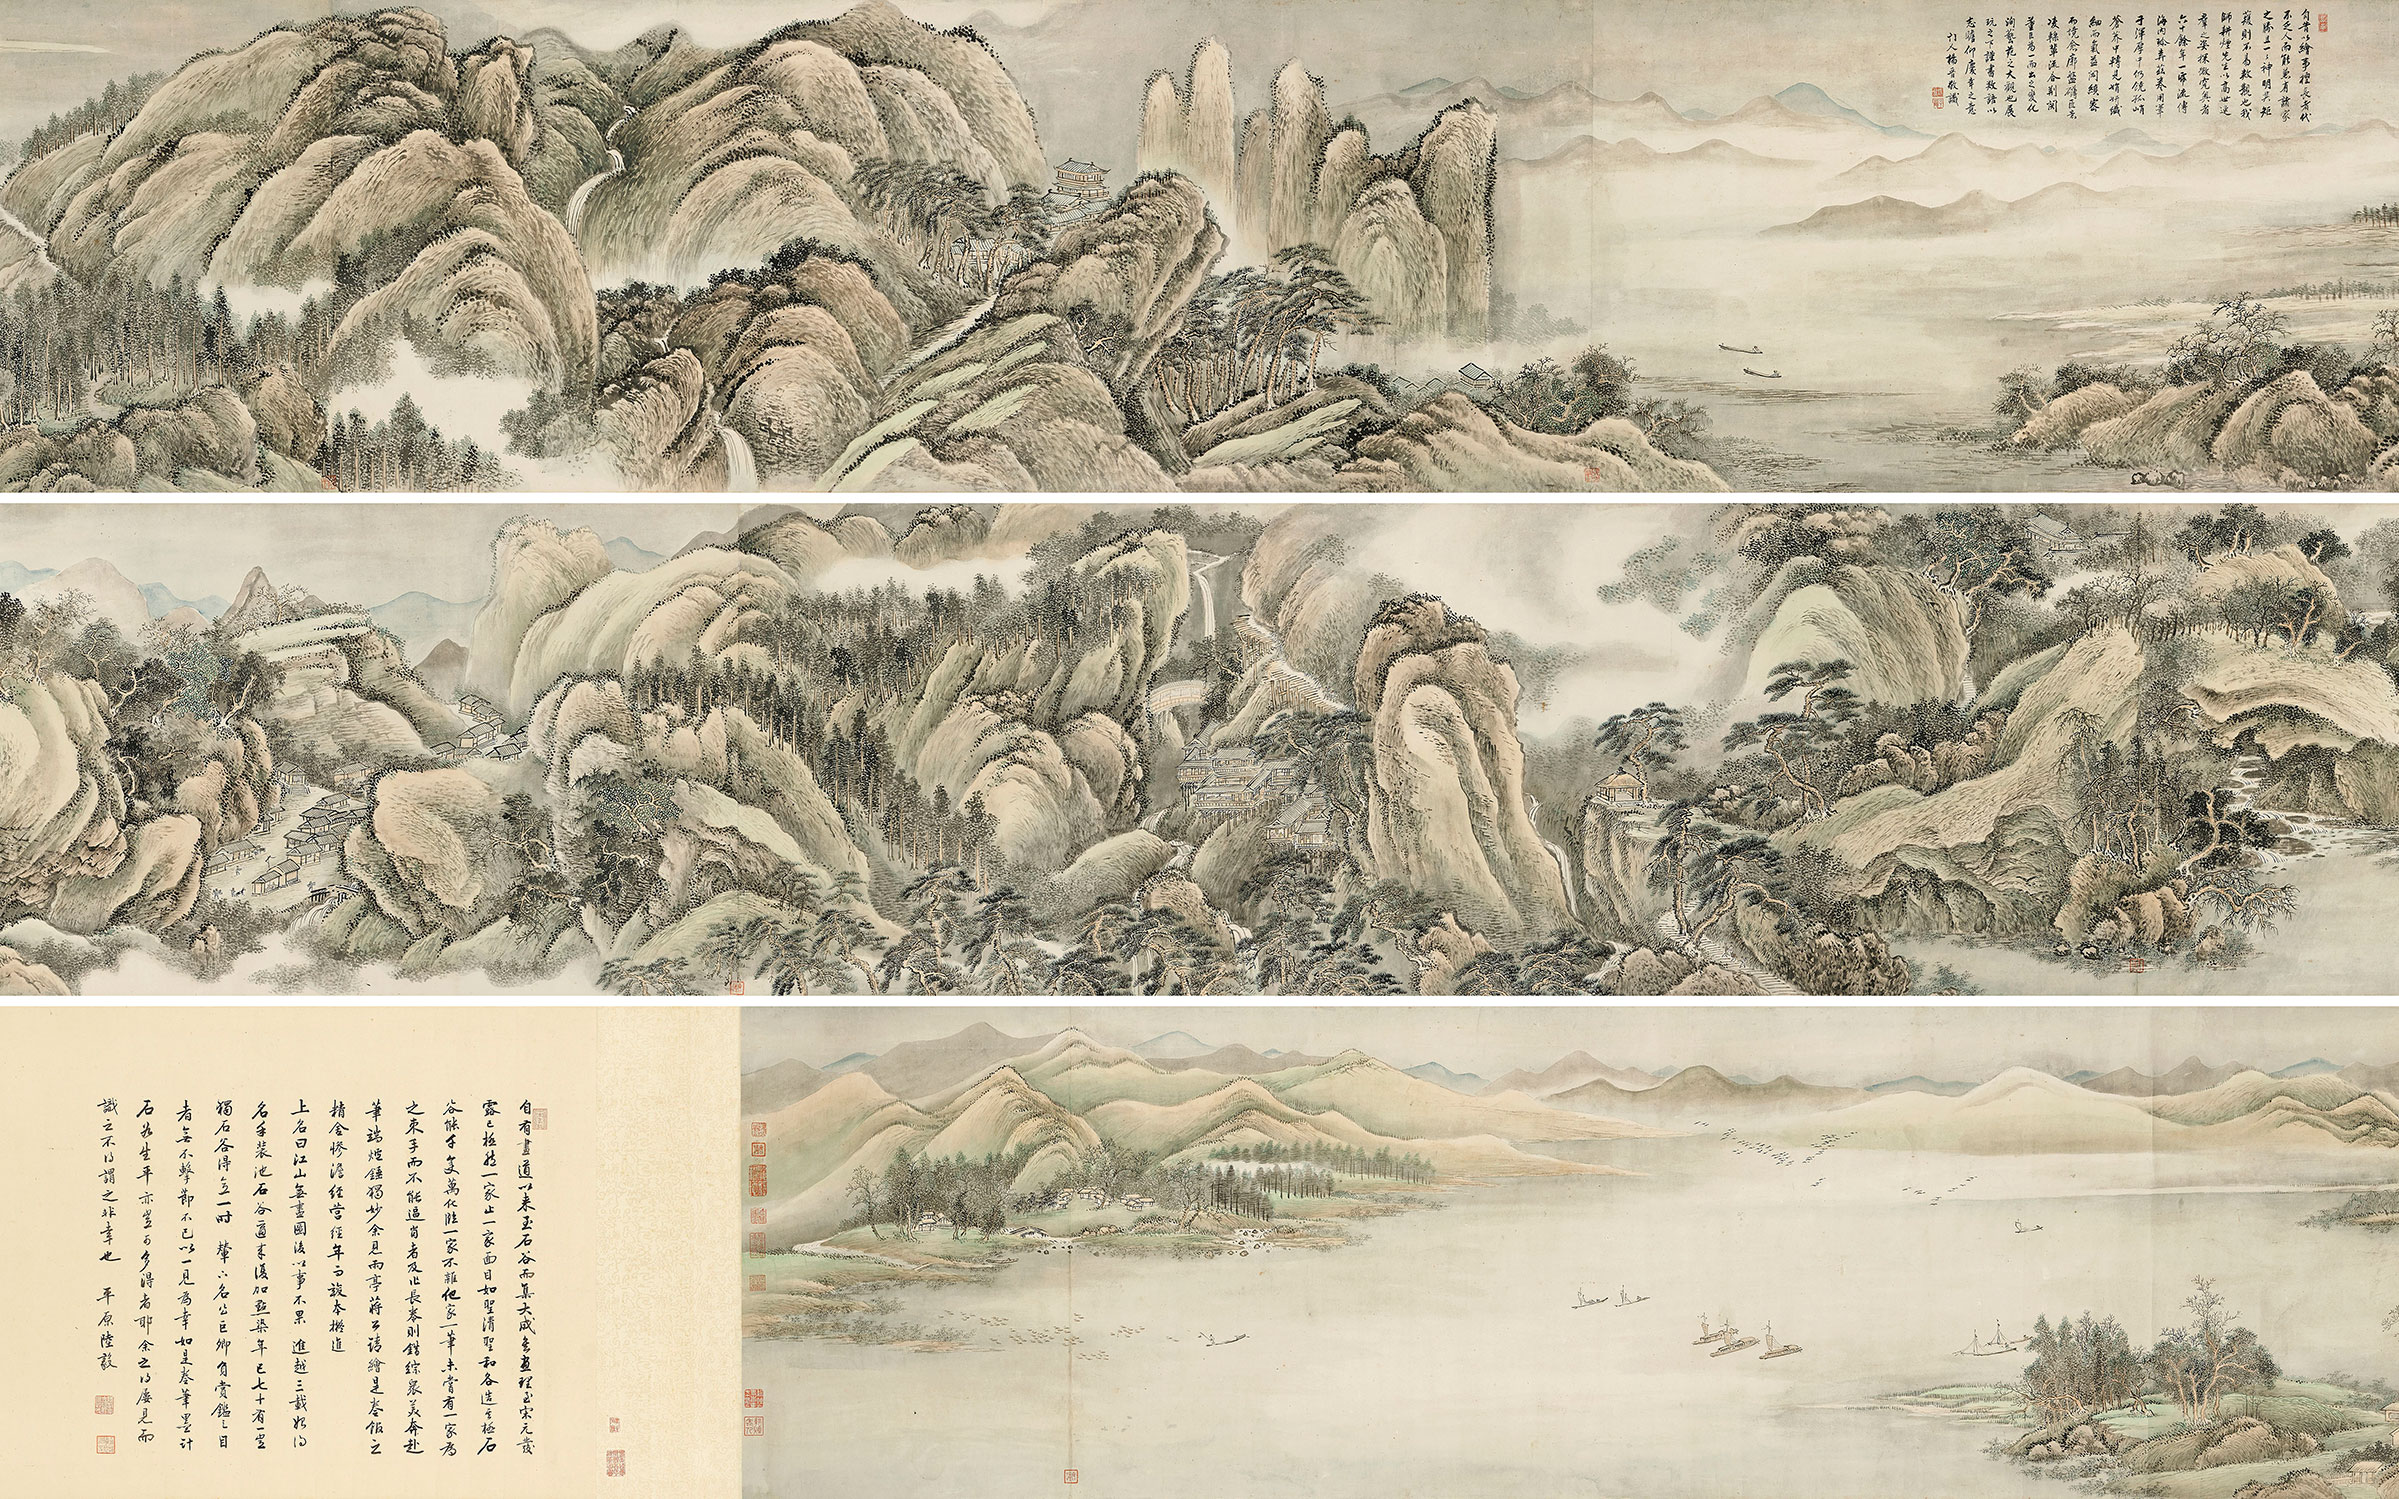 Wang Hui, (1632-1717), (detail) Endless Streams and Mountains. Handscroll, ink and colour on paper. 21 x 480½ in (53.2 x 1220.5 cm). Sold for HK$28,925,000 on 8 July at Christie's in Hong